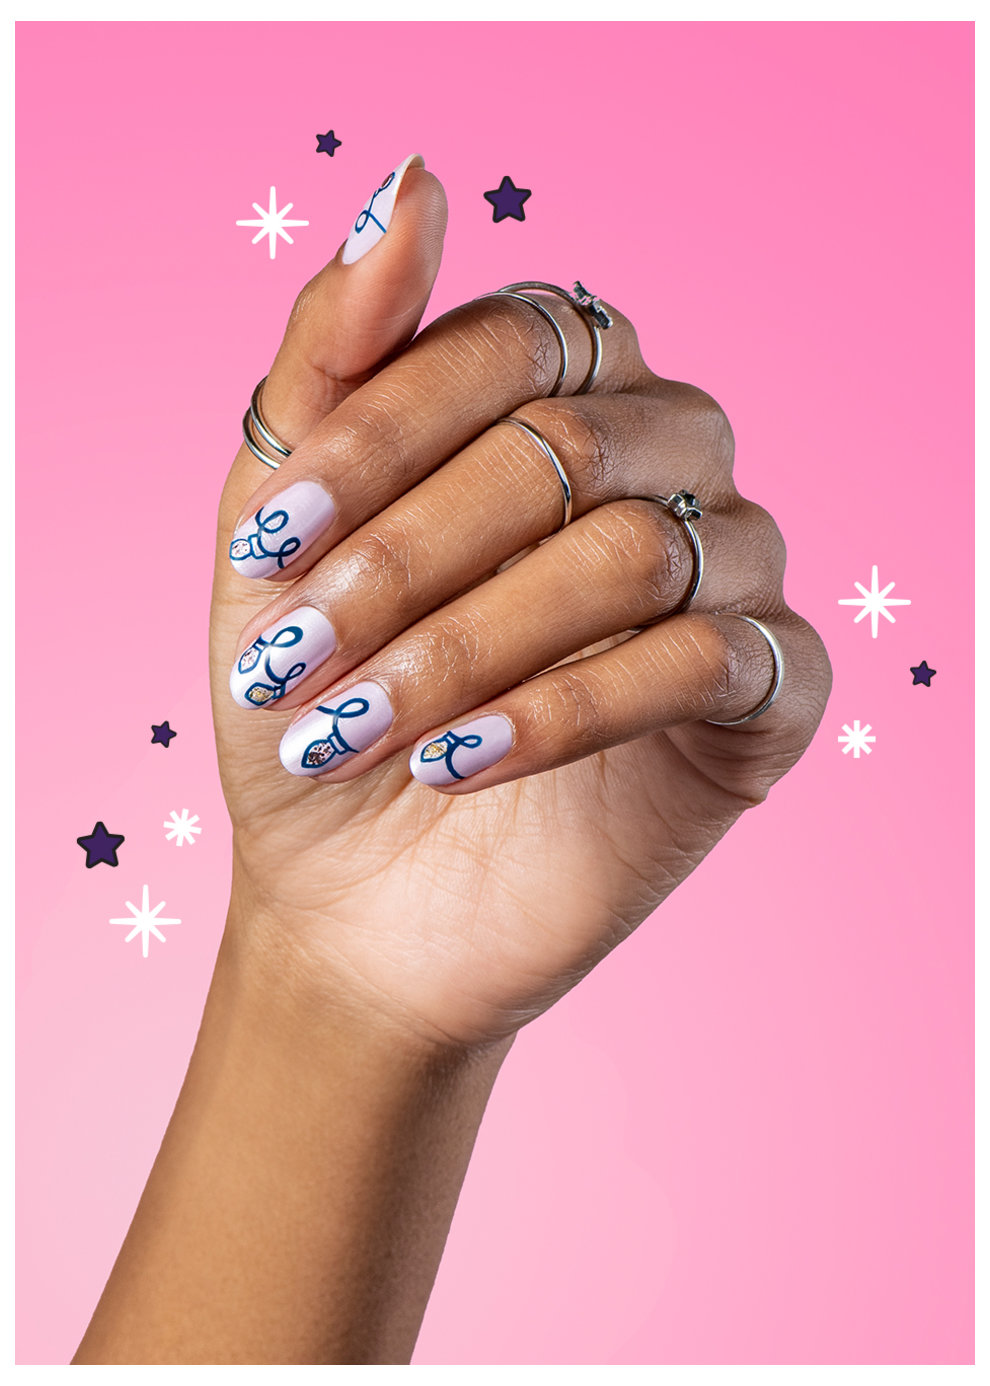 OPI x Hello Kitty Nail Art Shine Bright